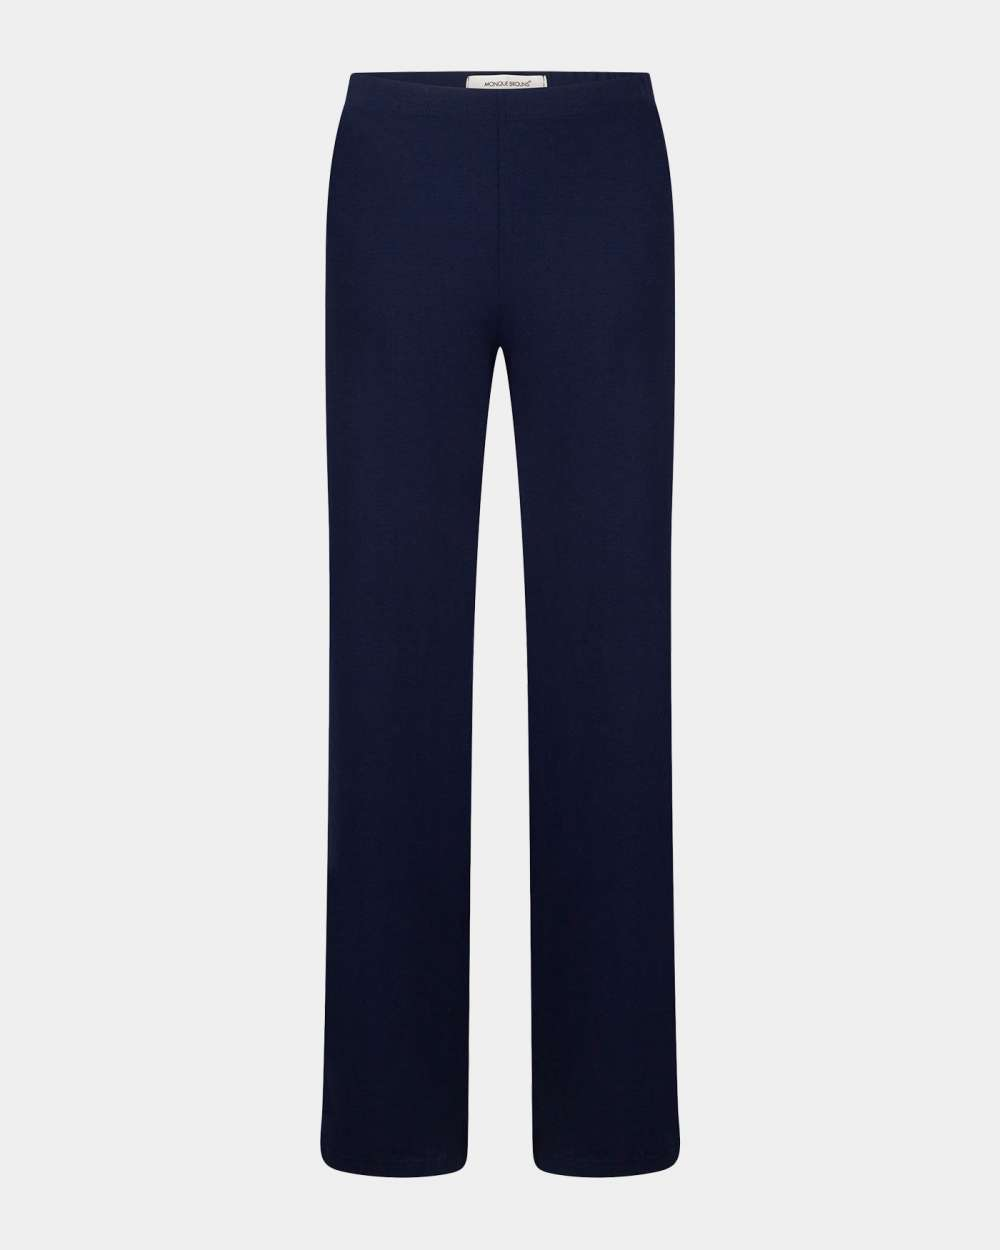 navy-marine flared pants/ navy-marine flare broek